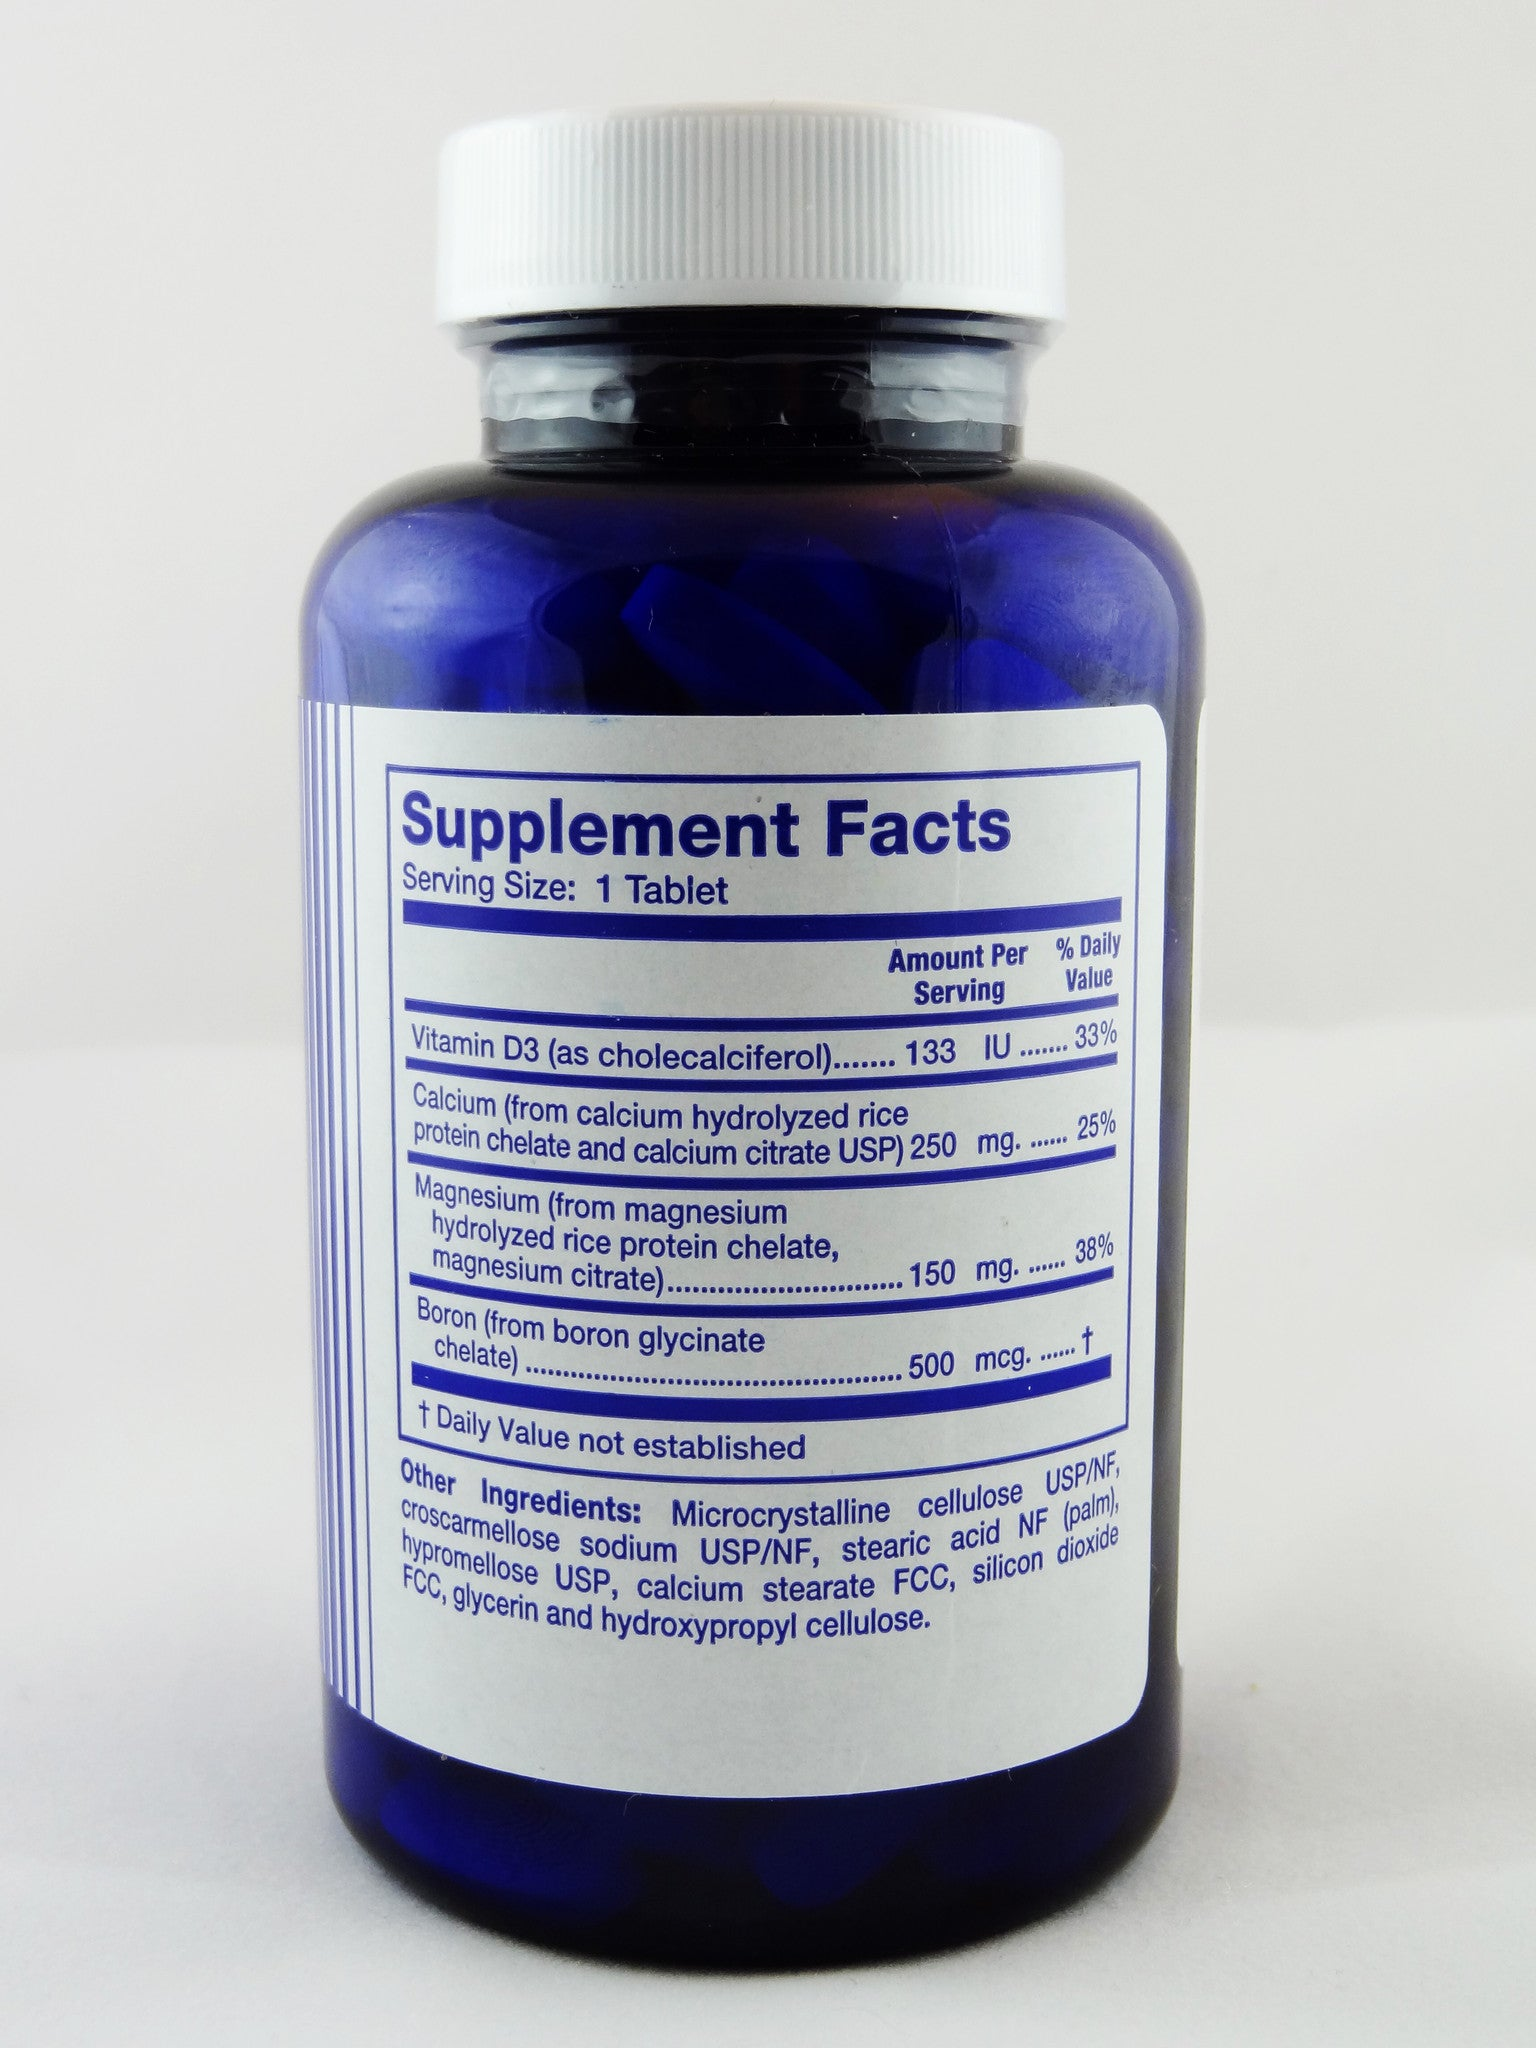 Paramin Supplement Facts